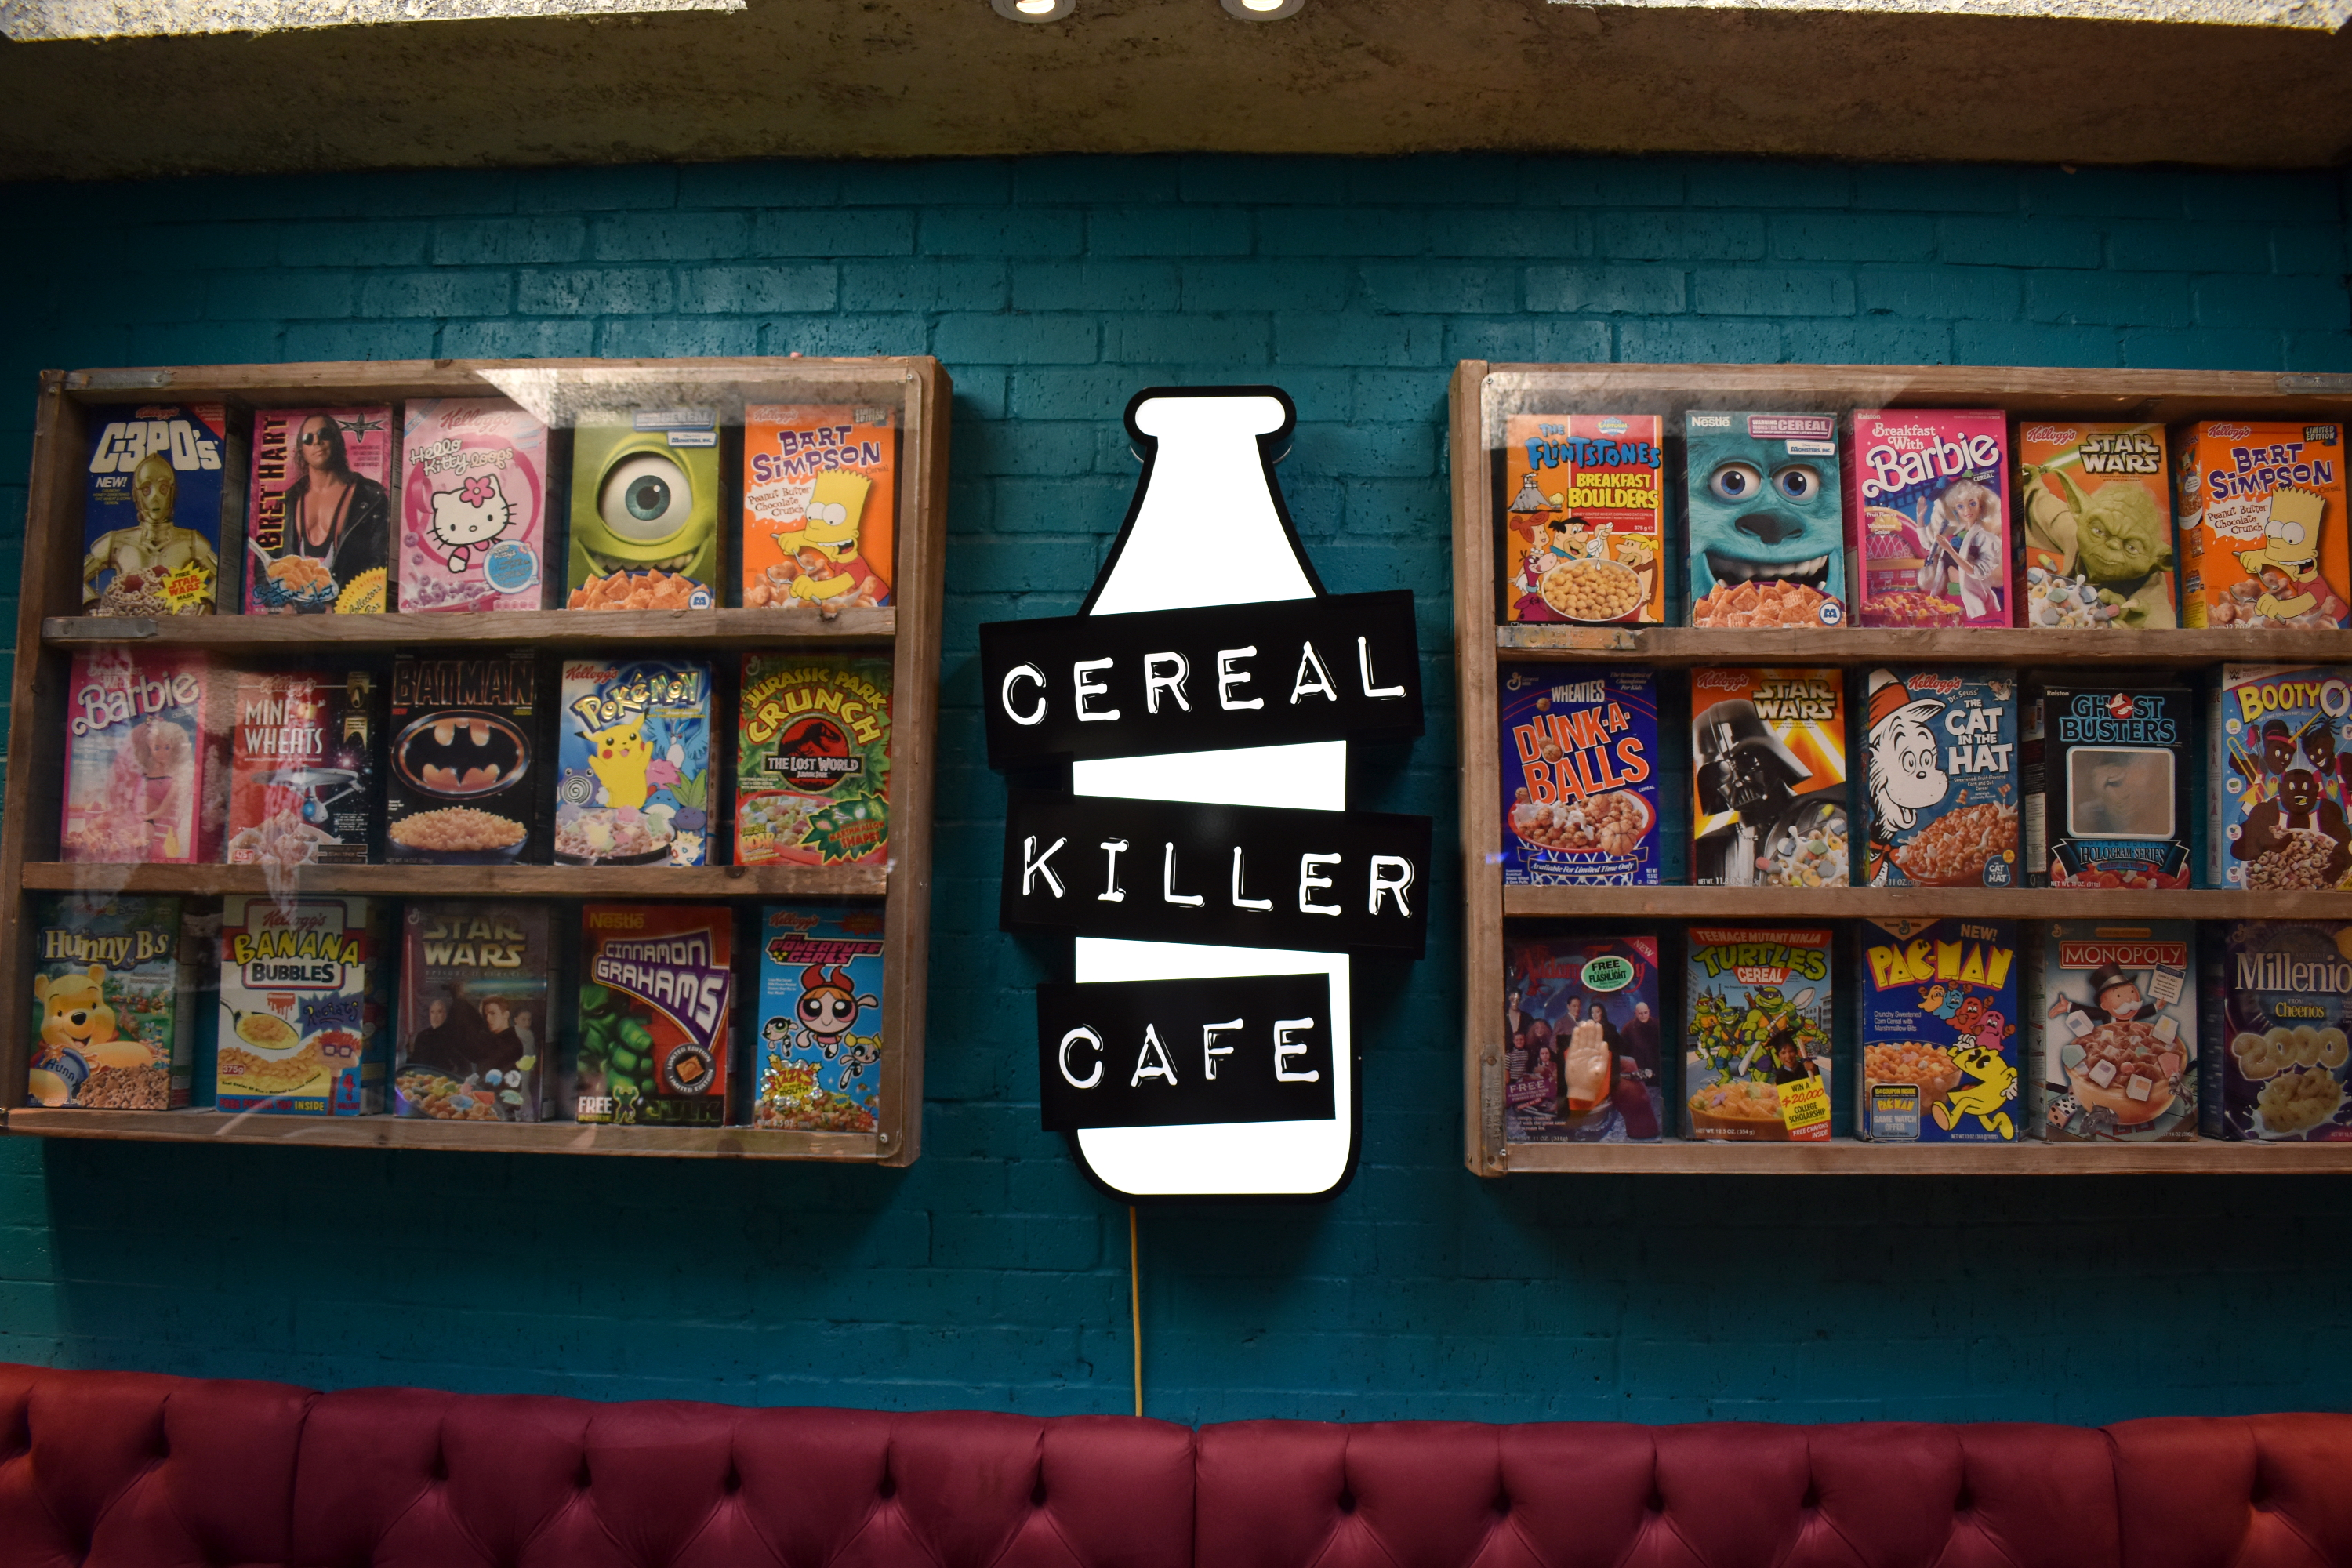 cafe sign in london with bright neon sign and cereal boxes surrounding